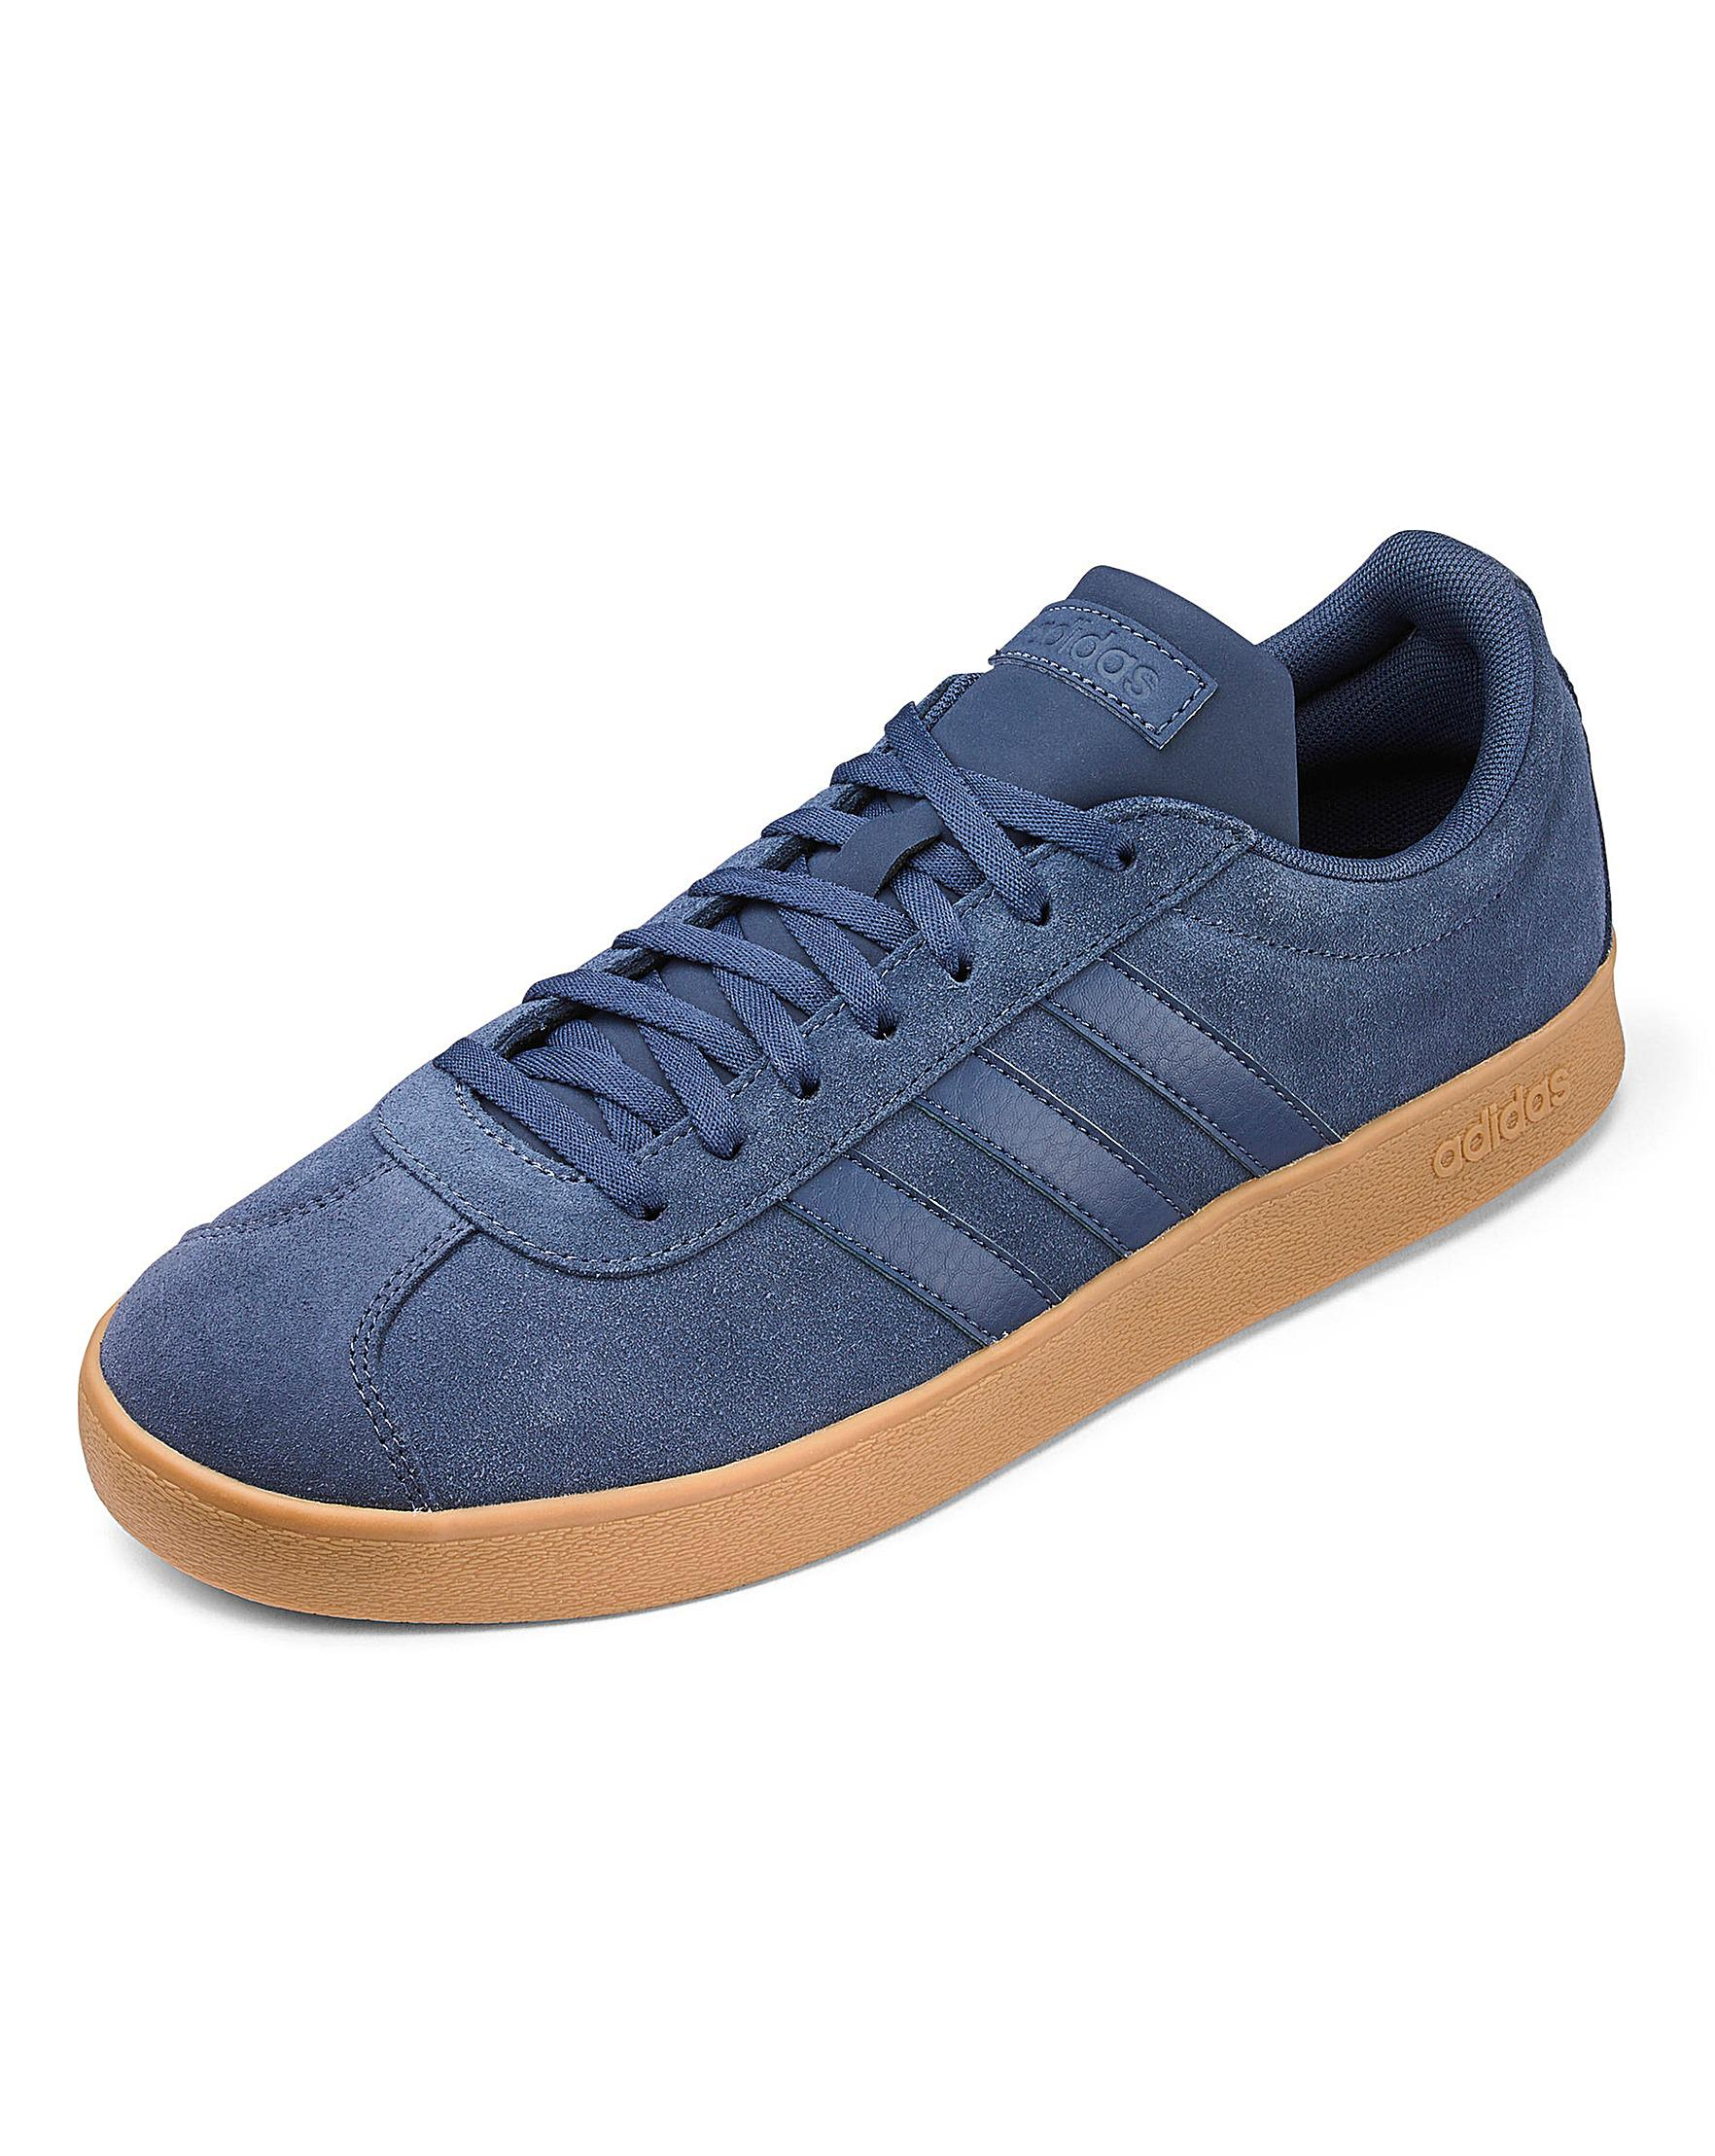 ddbaef5b3915 adidas Vl Court 2.0 Trainers in Blue for Men - Lyst